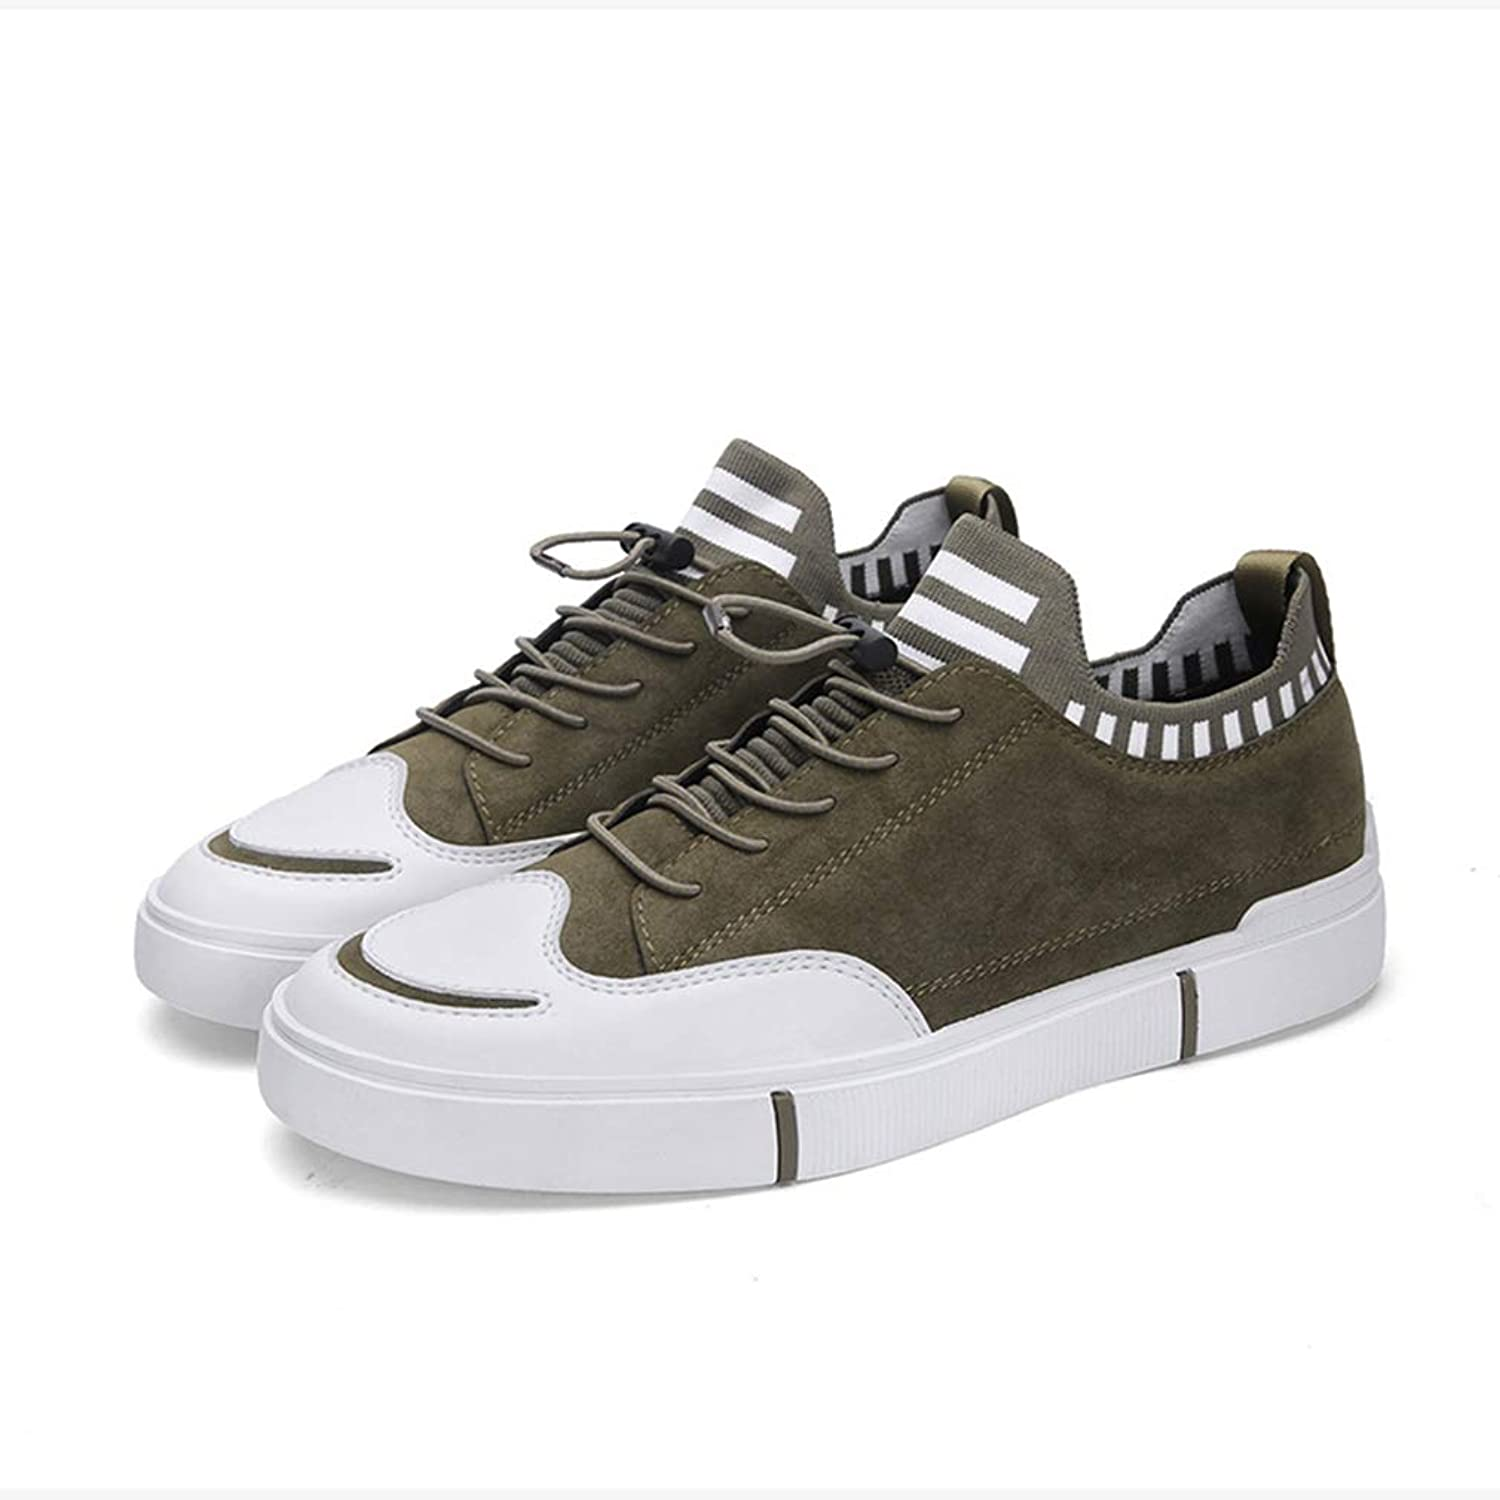 Y H Men's Casual shoes, Mesh Spring Fall New Flat shoes